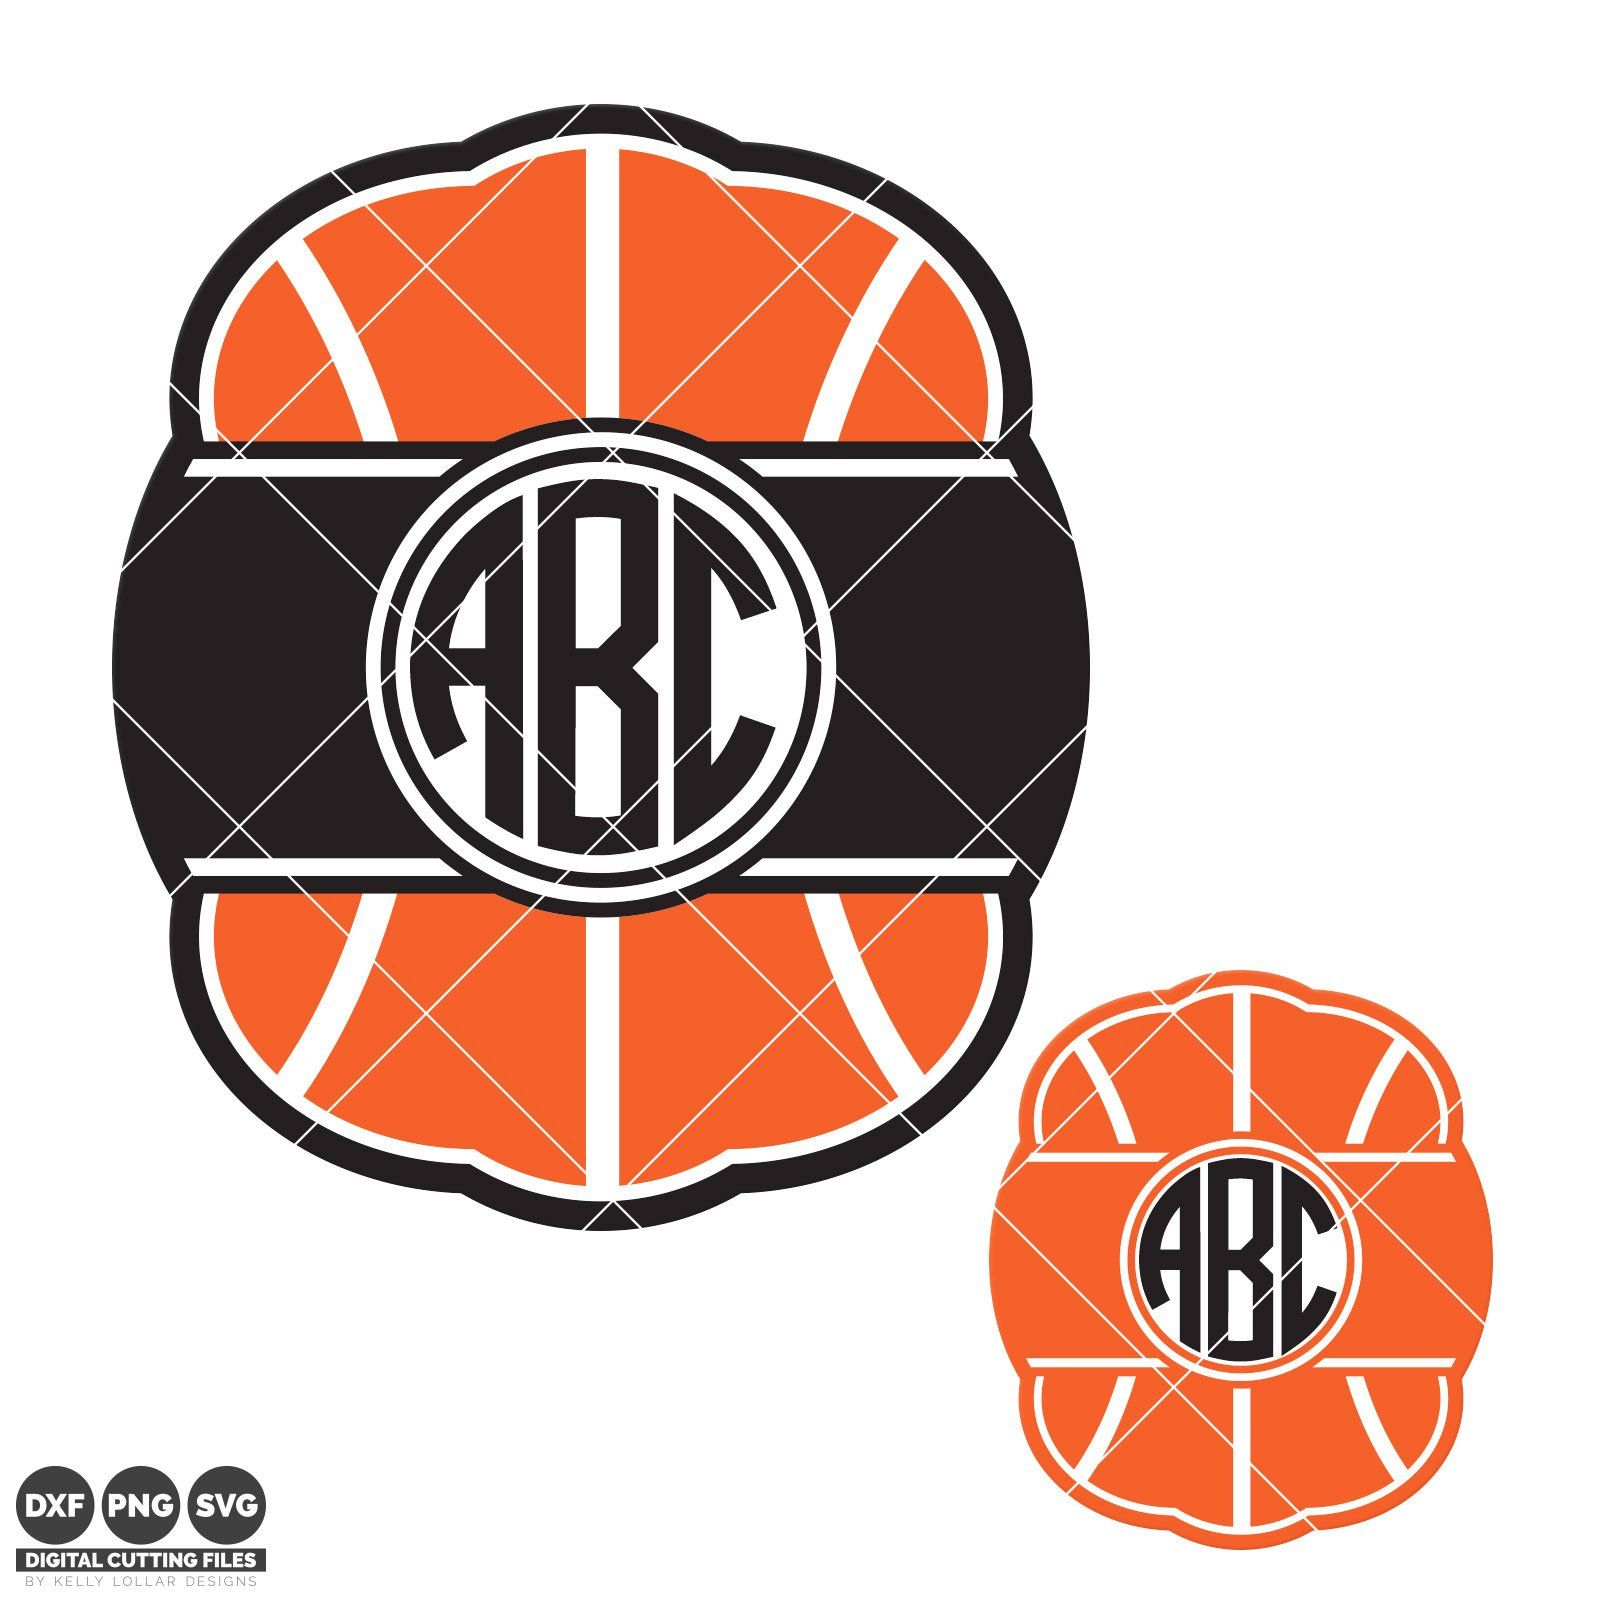 Basketball Monogram svg files work great with initials